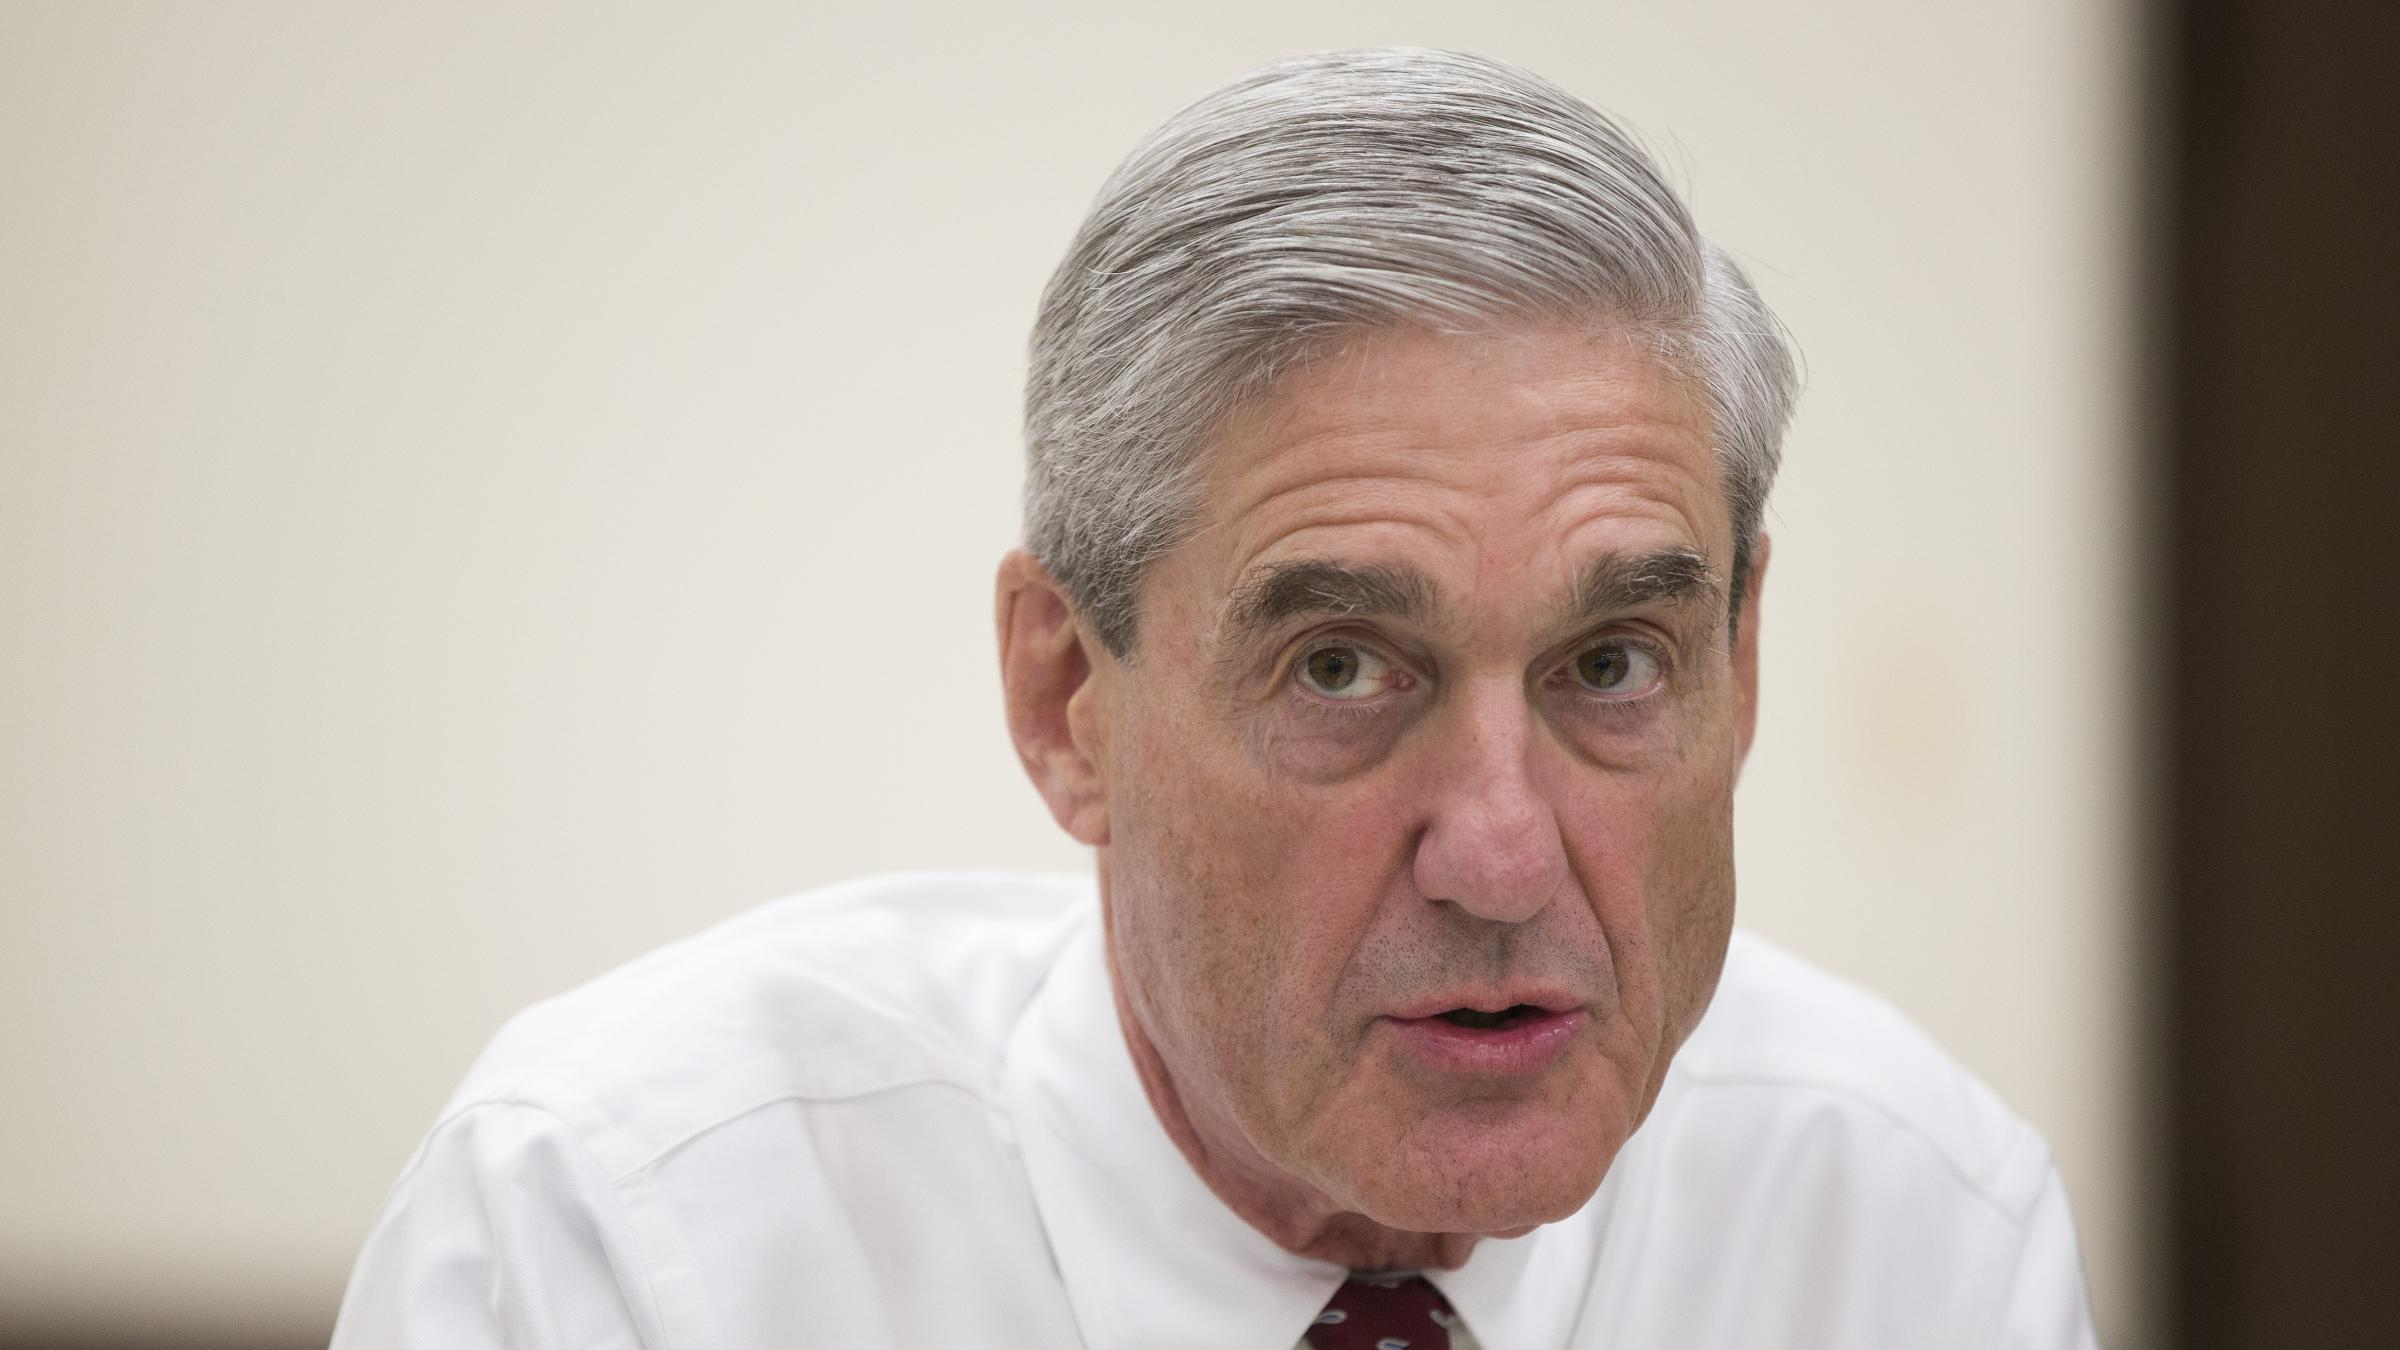 Friend says Trump is considering 'terminating' Mueller